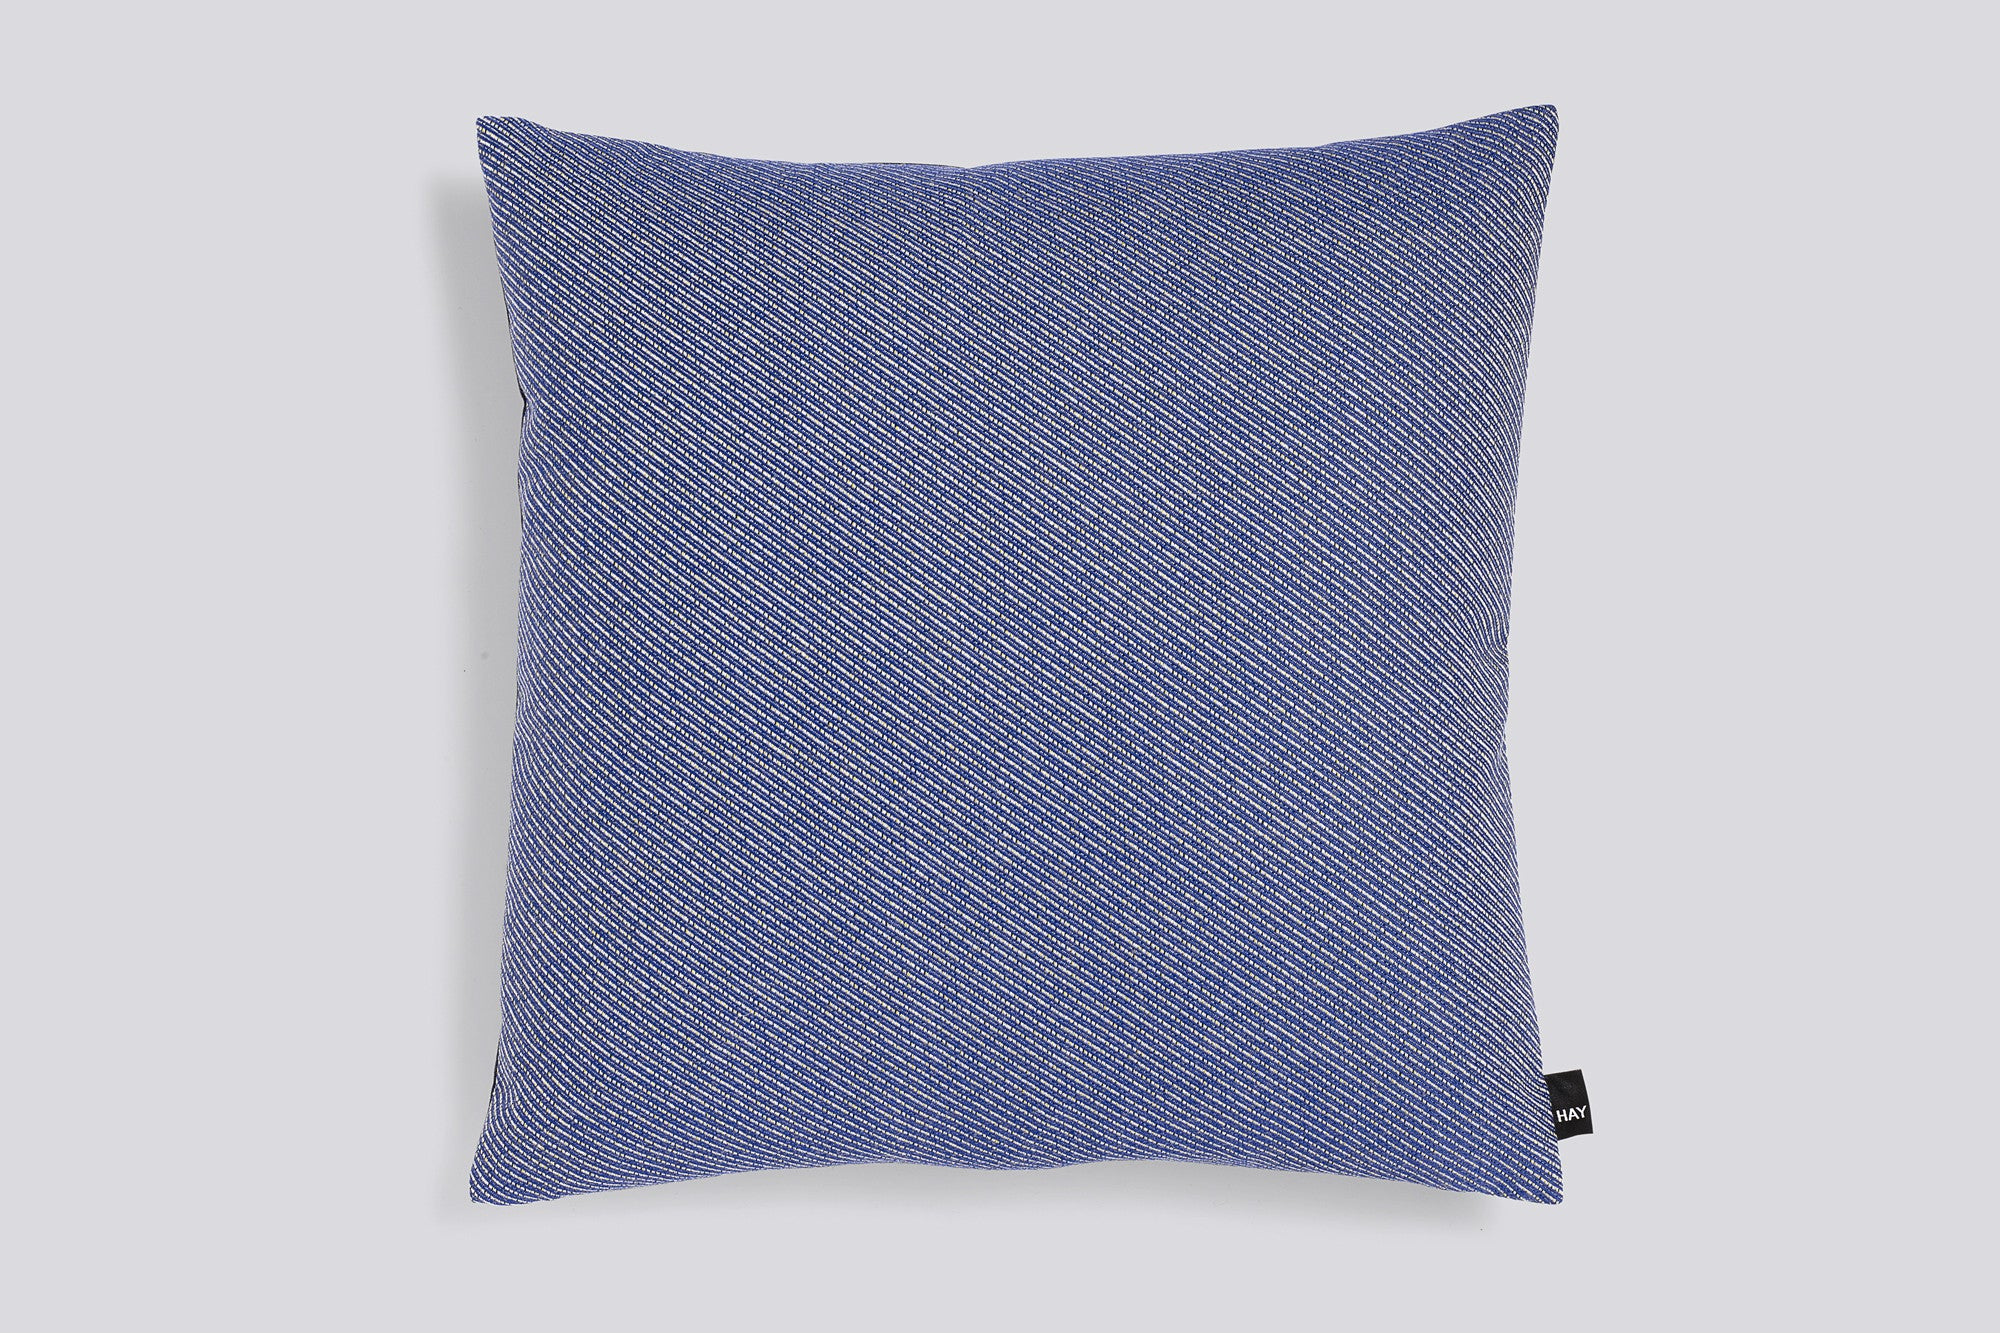 Eclectic Cushion, 50x50, Blue fra HAY